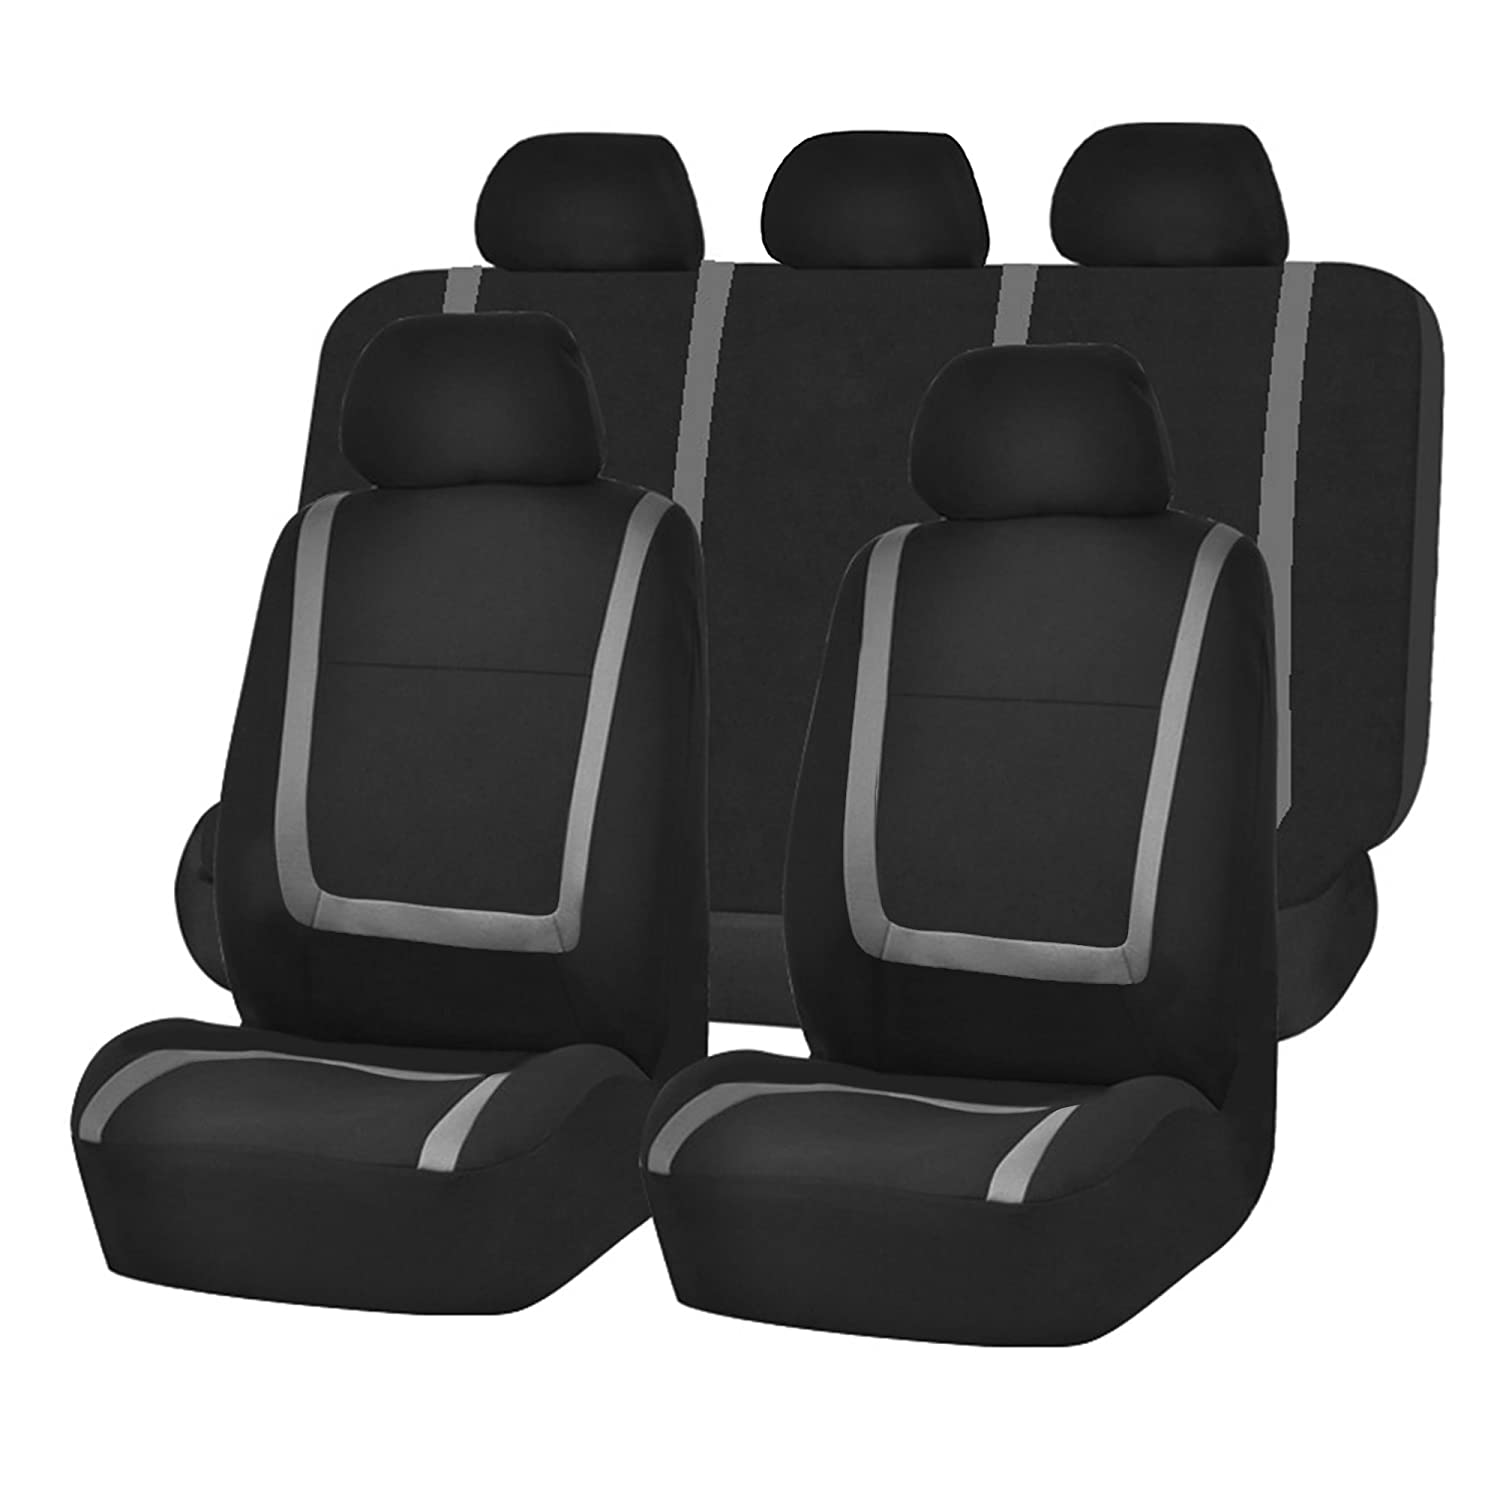 Truck or Van Suv FH Group FH-FB032115 Unique Flat Cloth Seat Cover w 5 Detachable Headrests and Solid Bench Red//Black- Fit Most Car